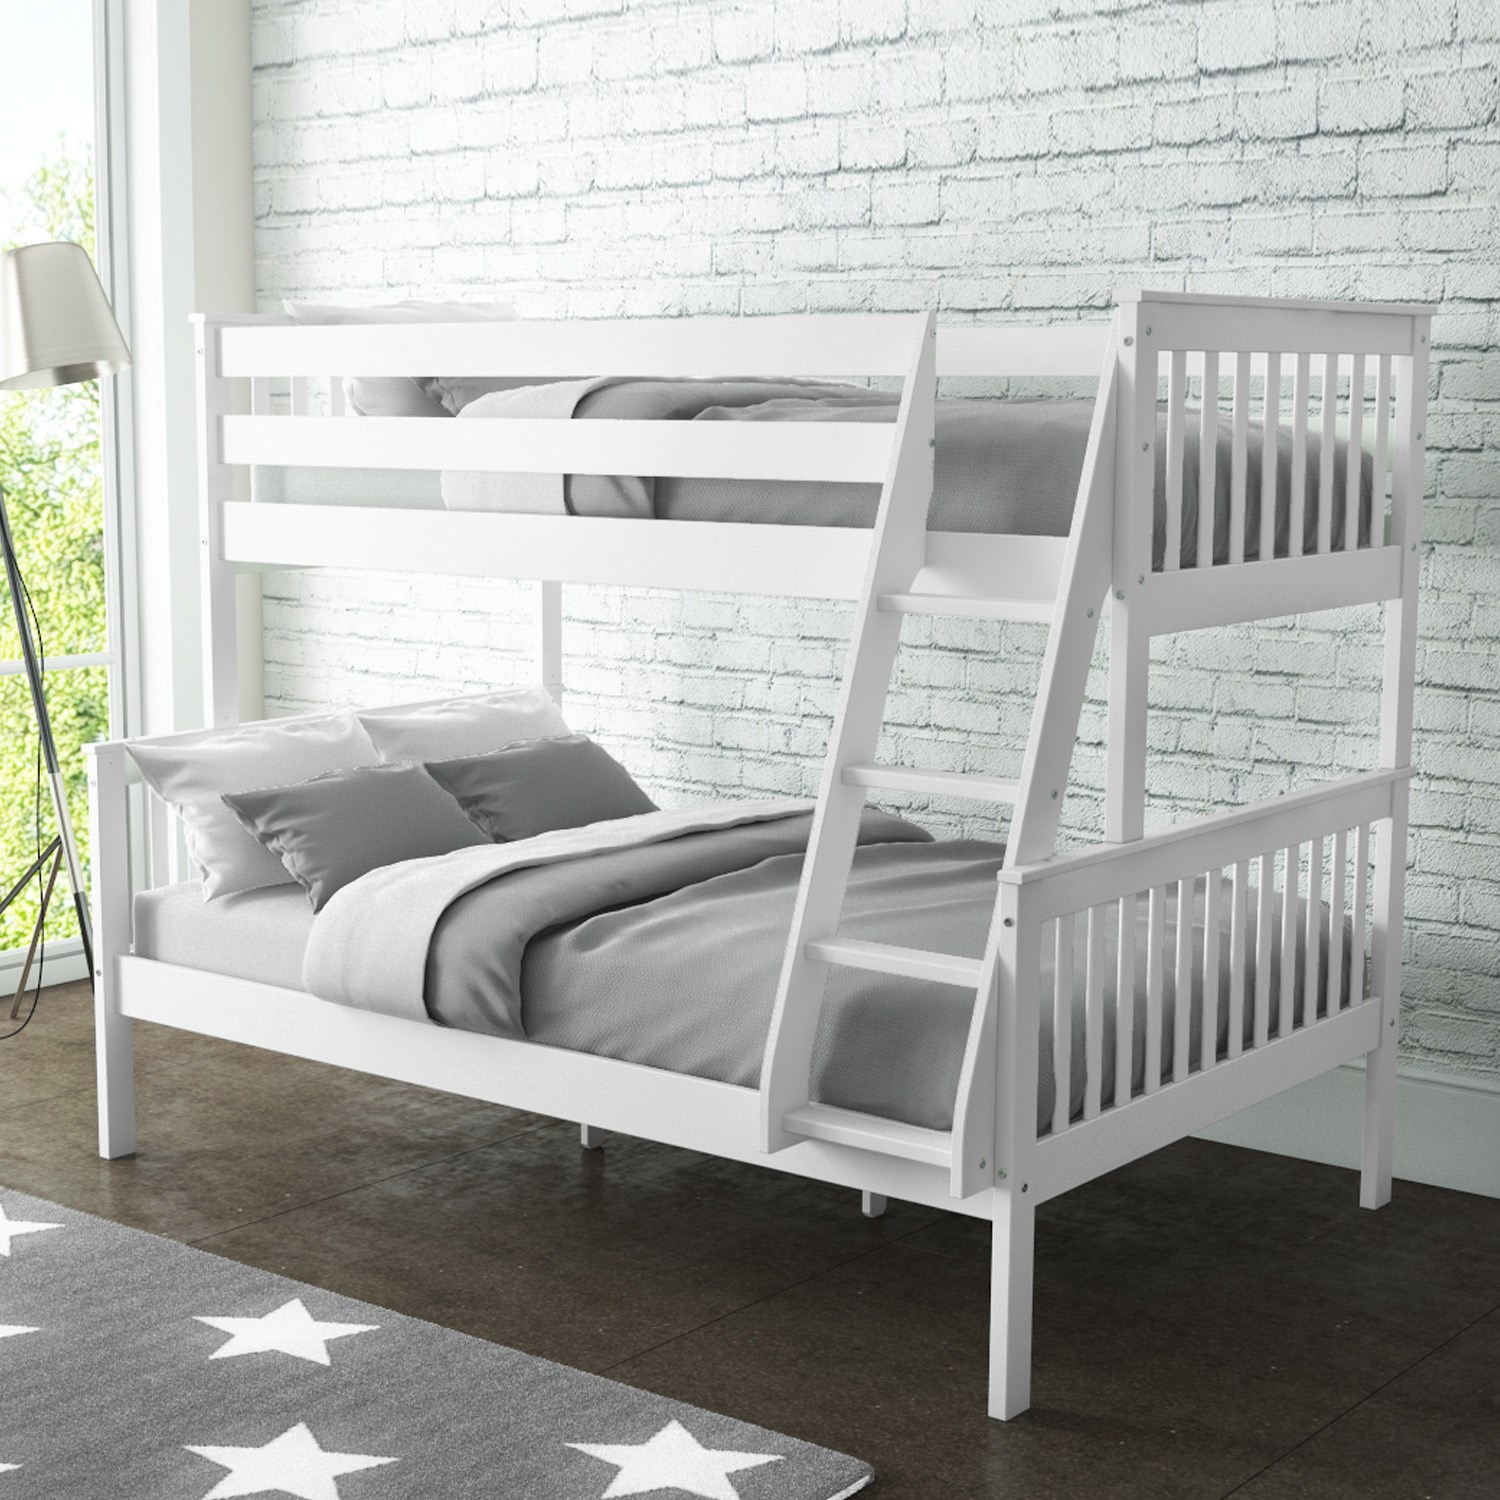 Oxford Triple Bunk Bed In White Small Double Oxf013 Ebay